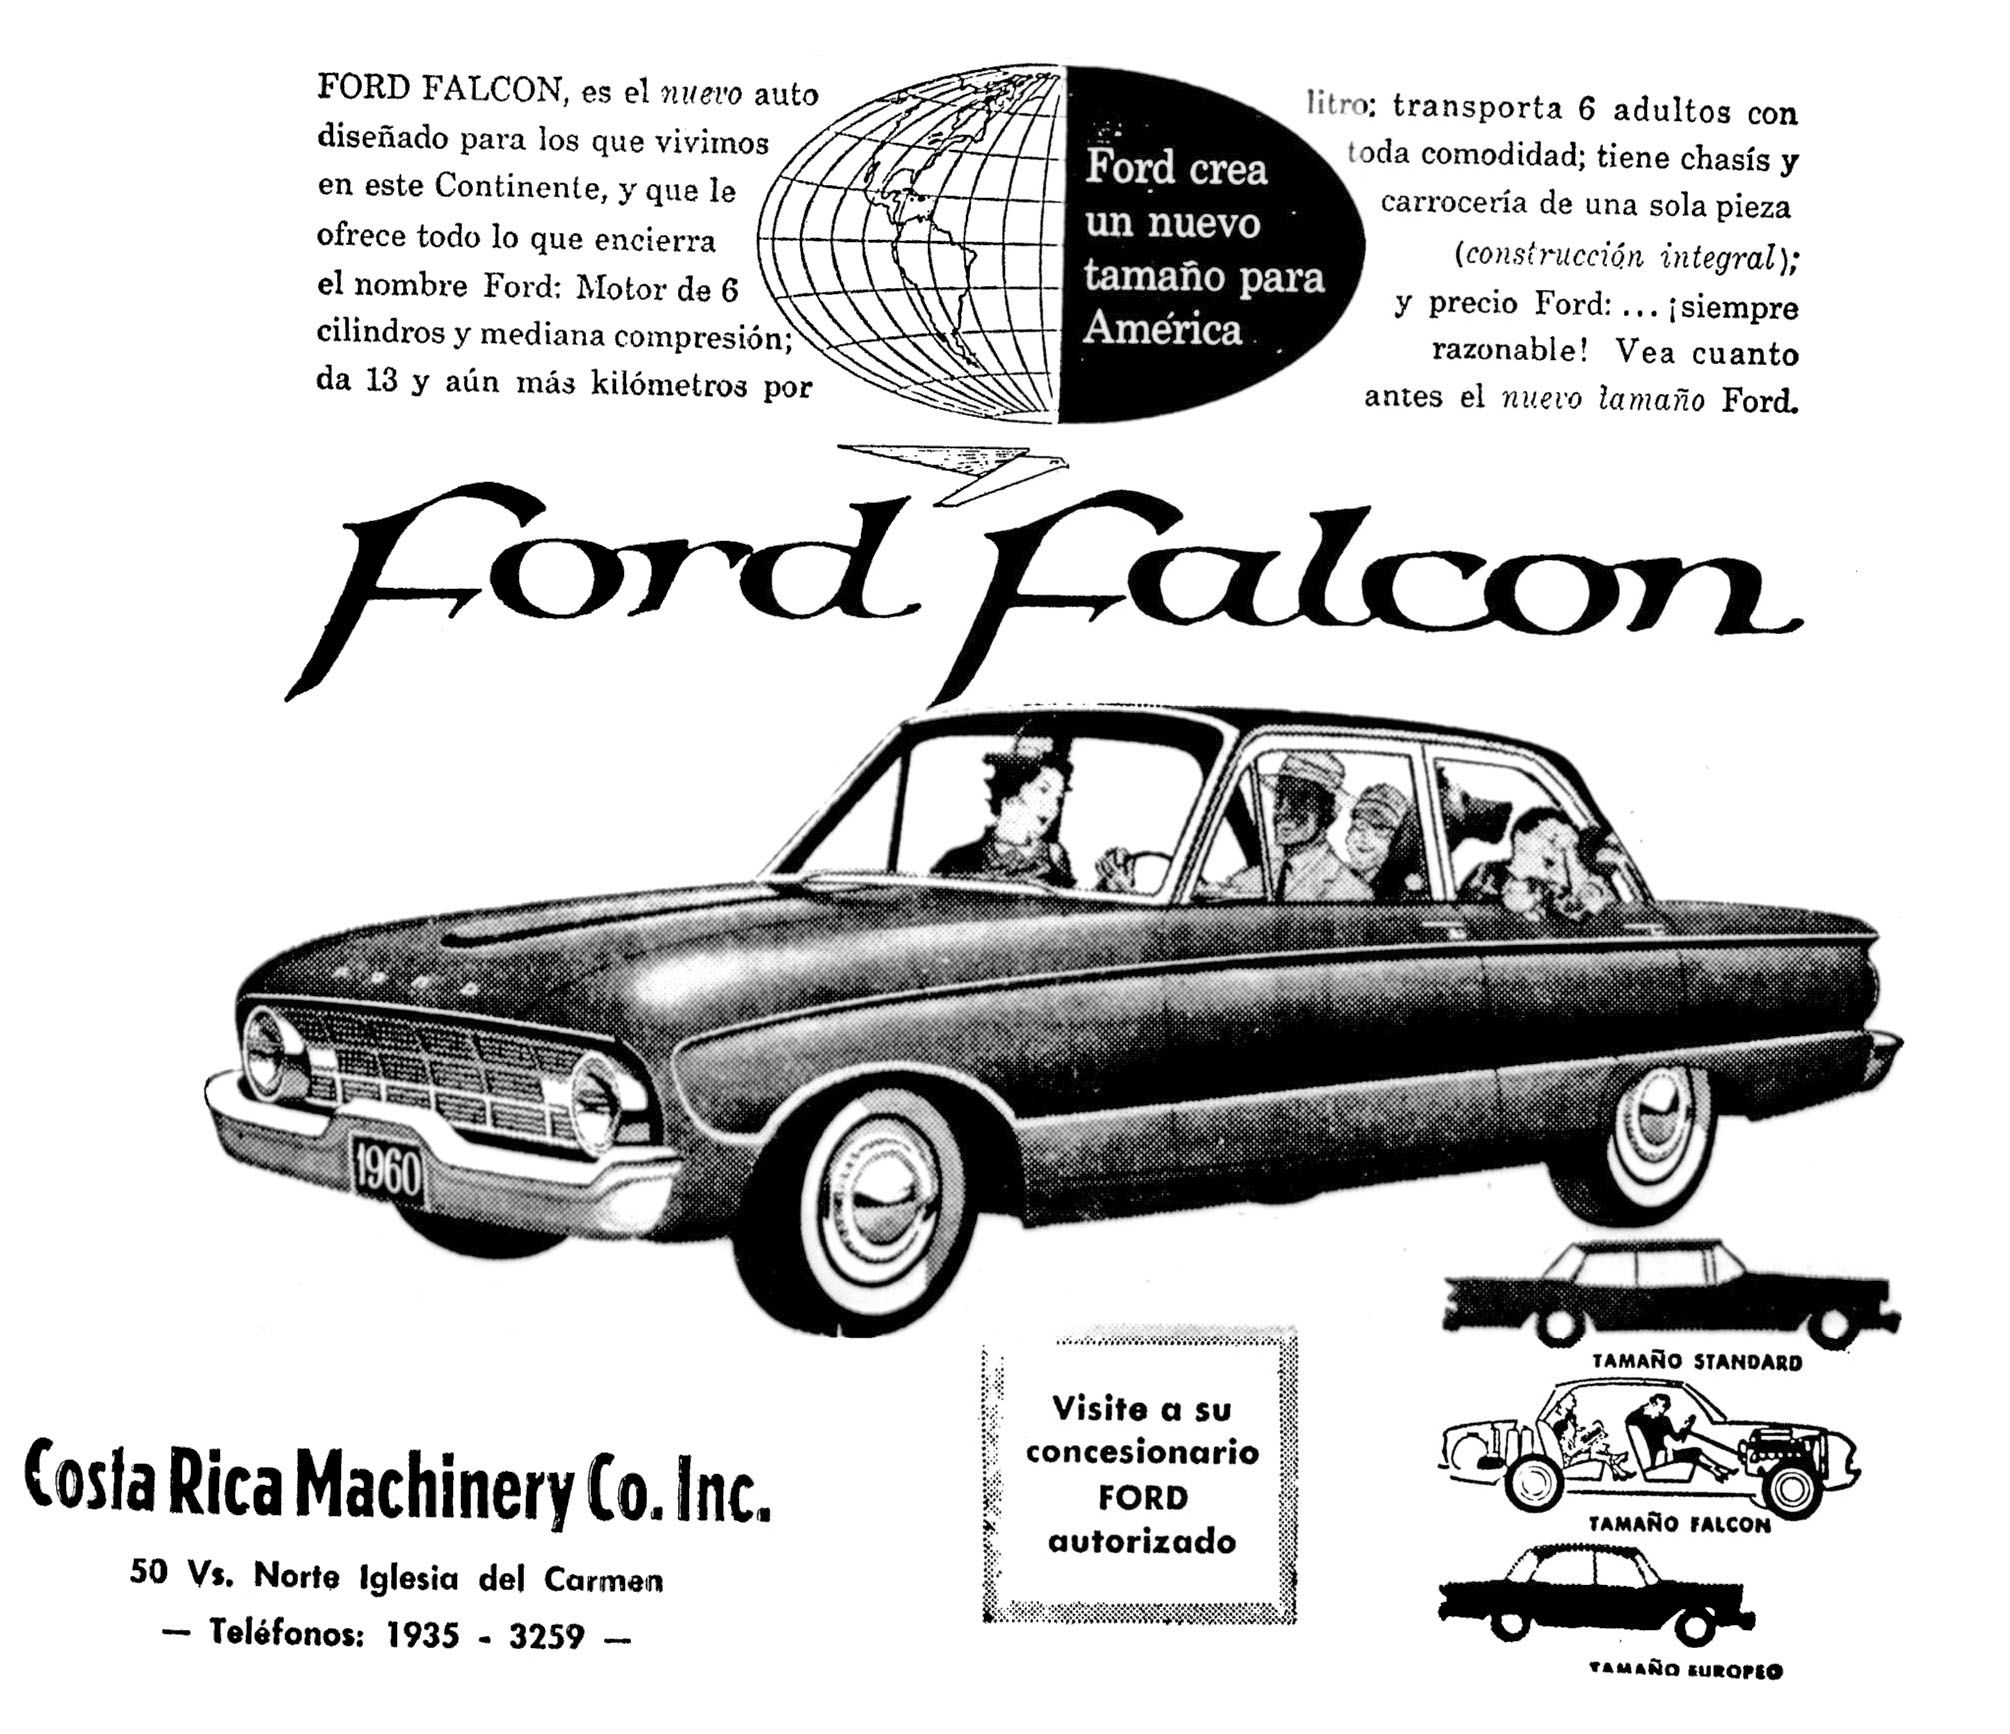 1960 Costa Rica Ford Falcon Chevrolet Malibu Car Ford